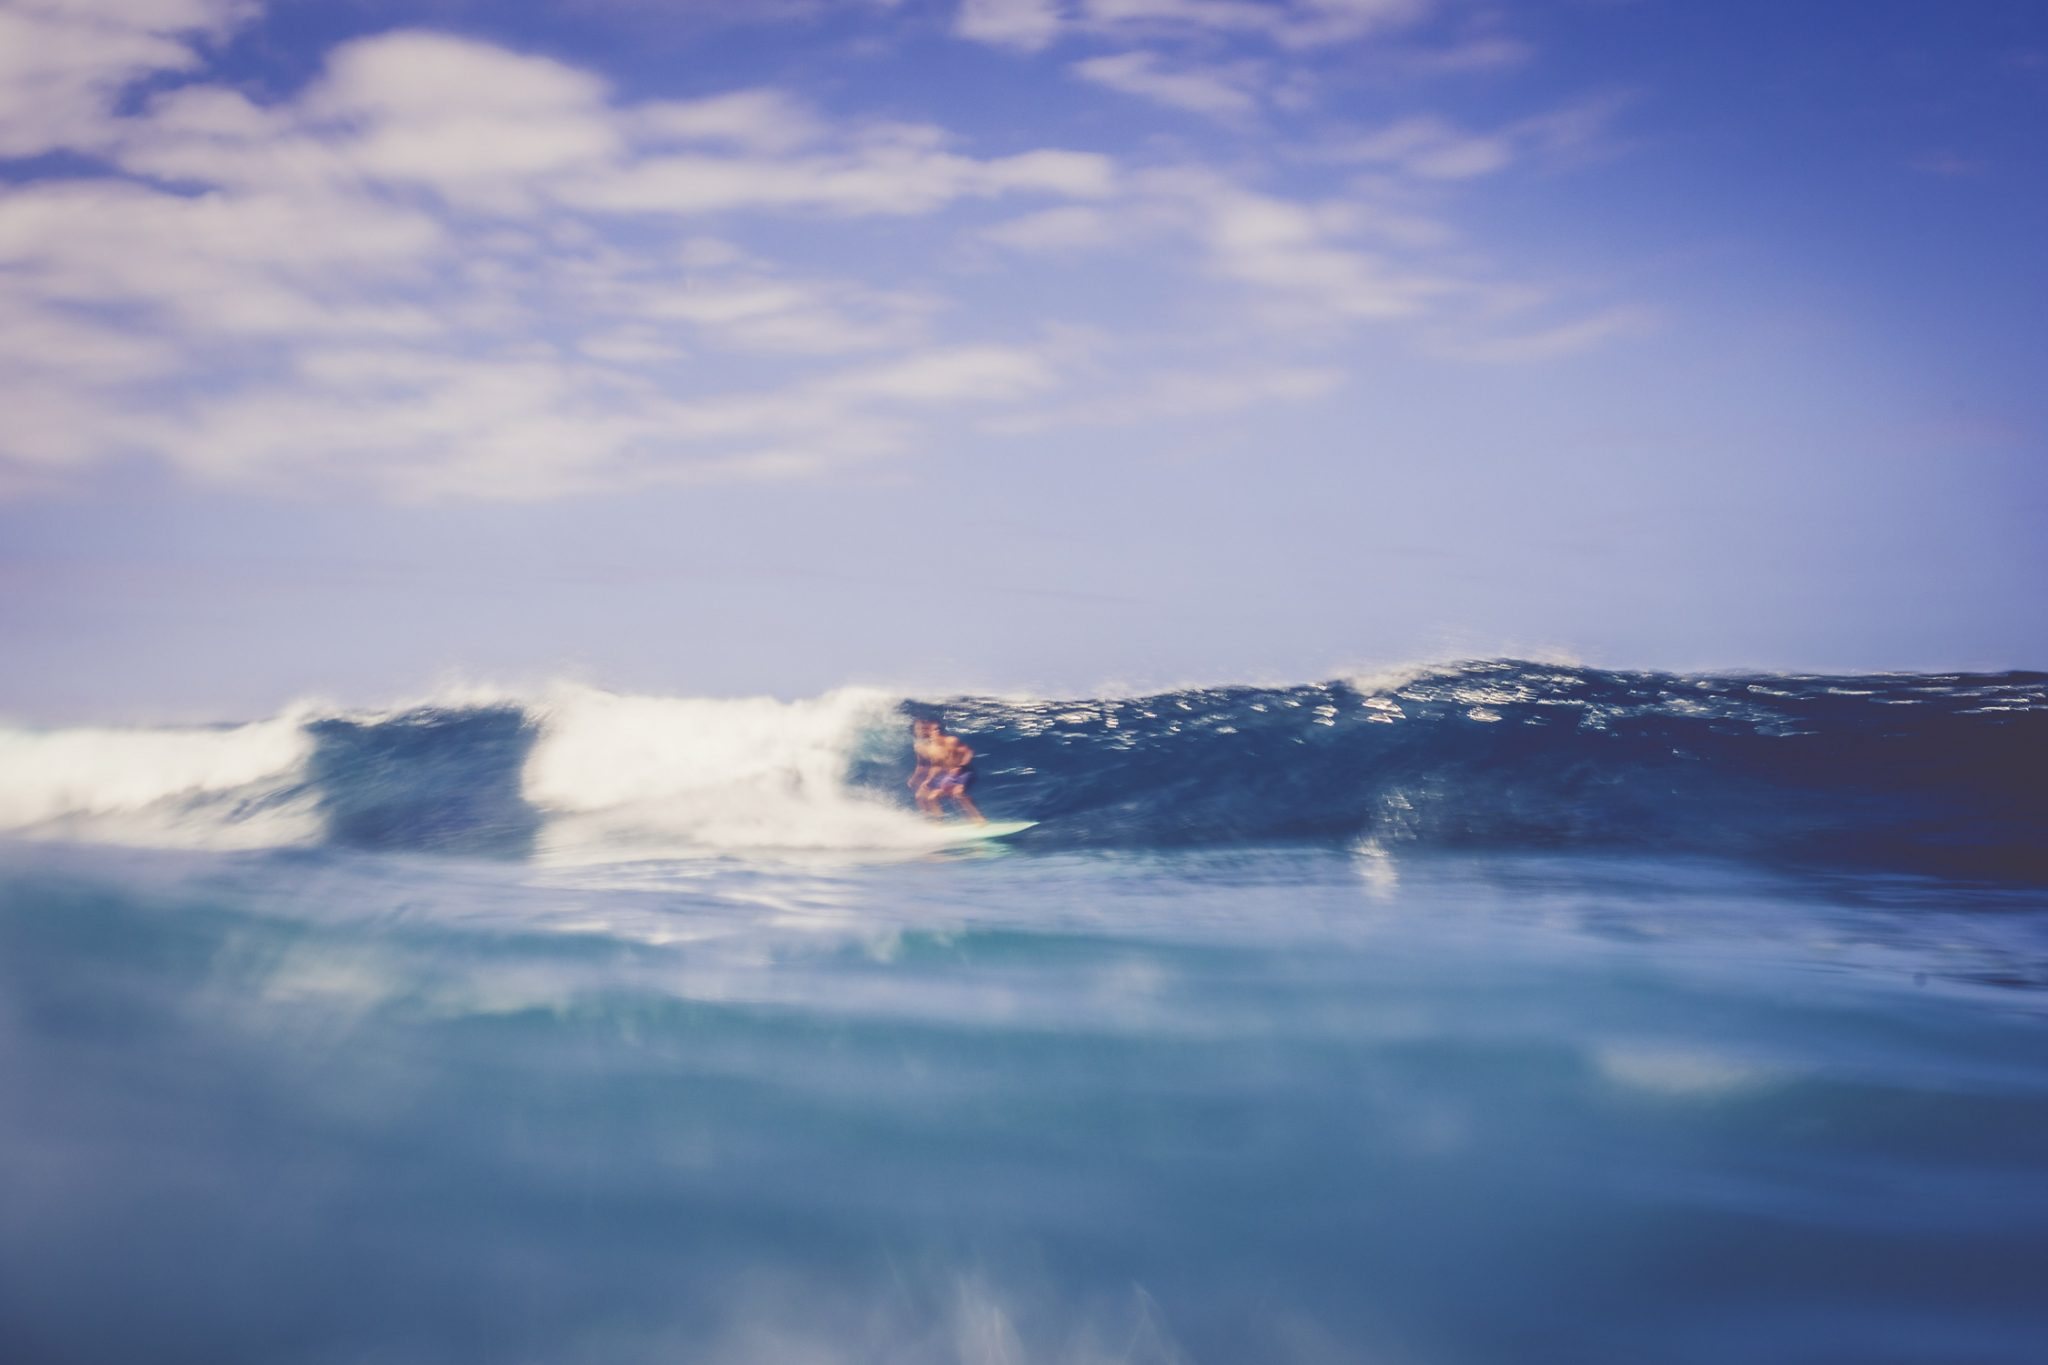 Surfer in Hawaii